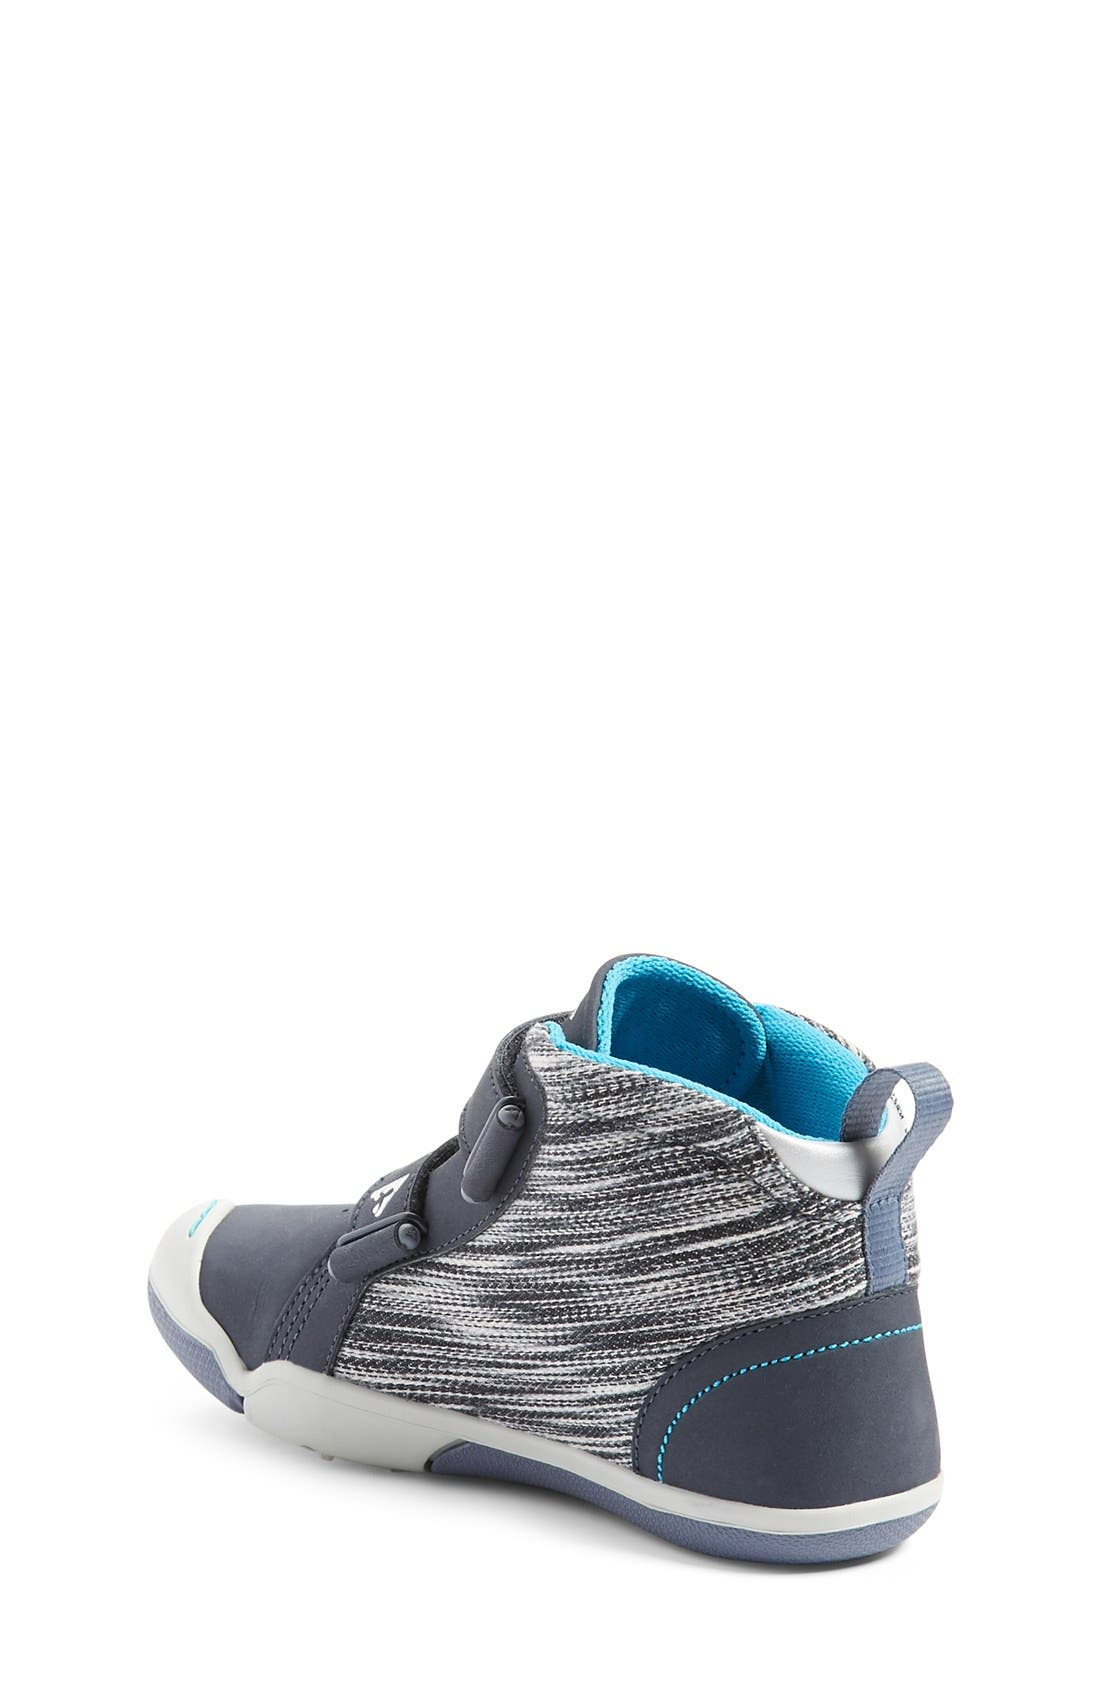 'Max' Customizable High Top Sneaker,                             Alternate thumbnail 3, color,                             Leather Wind